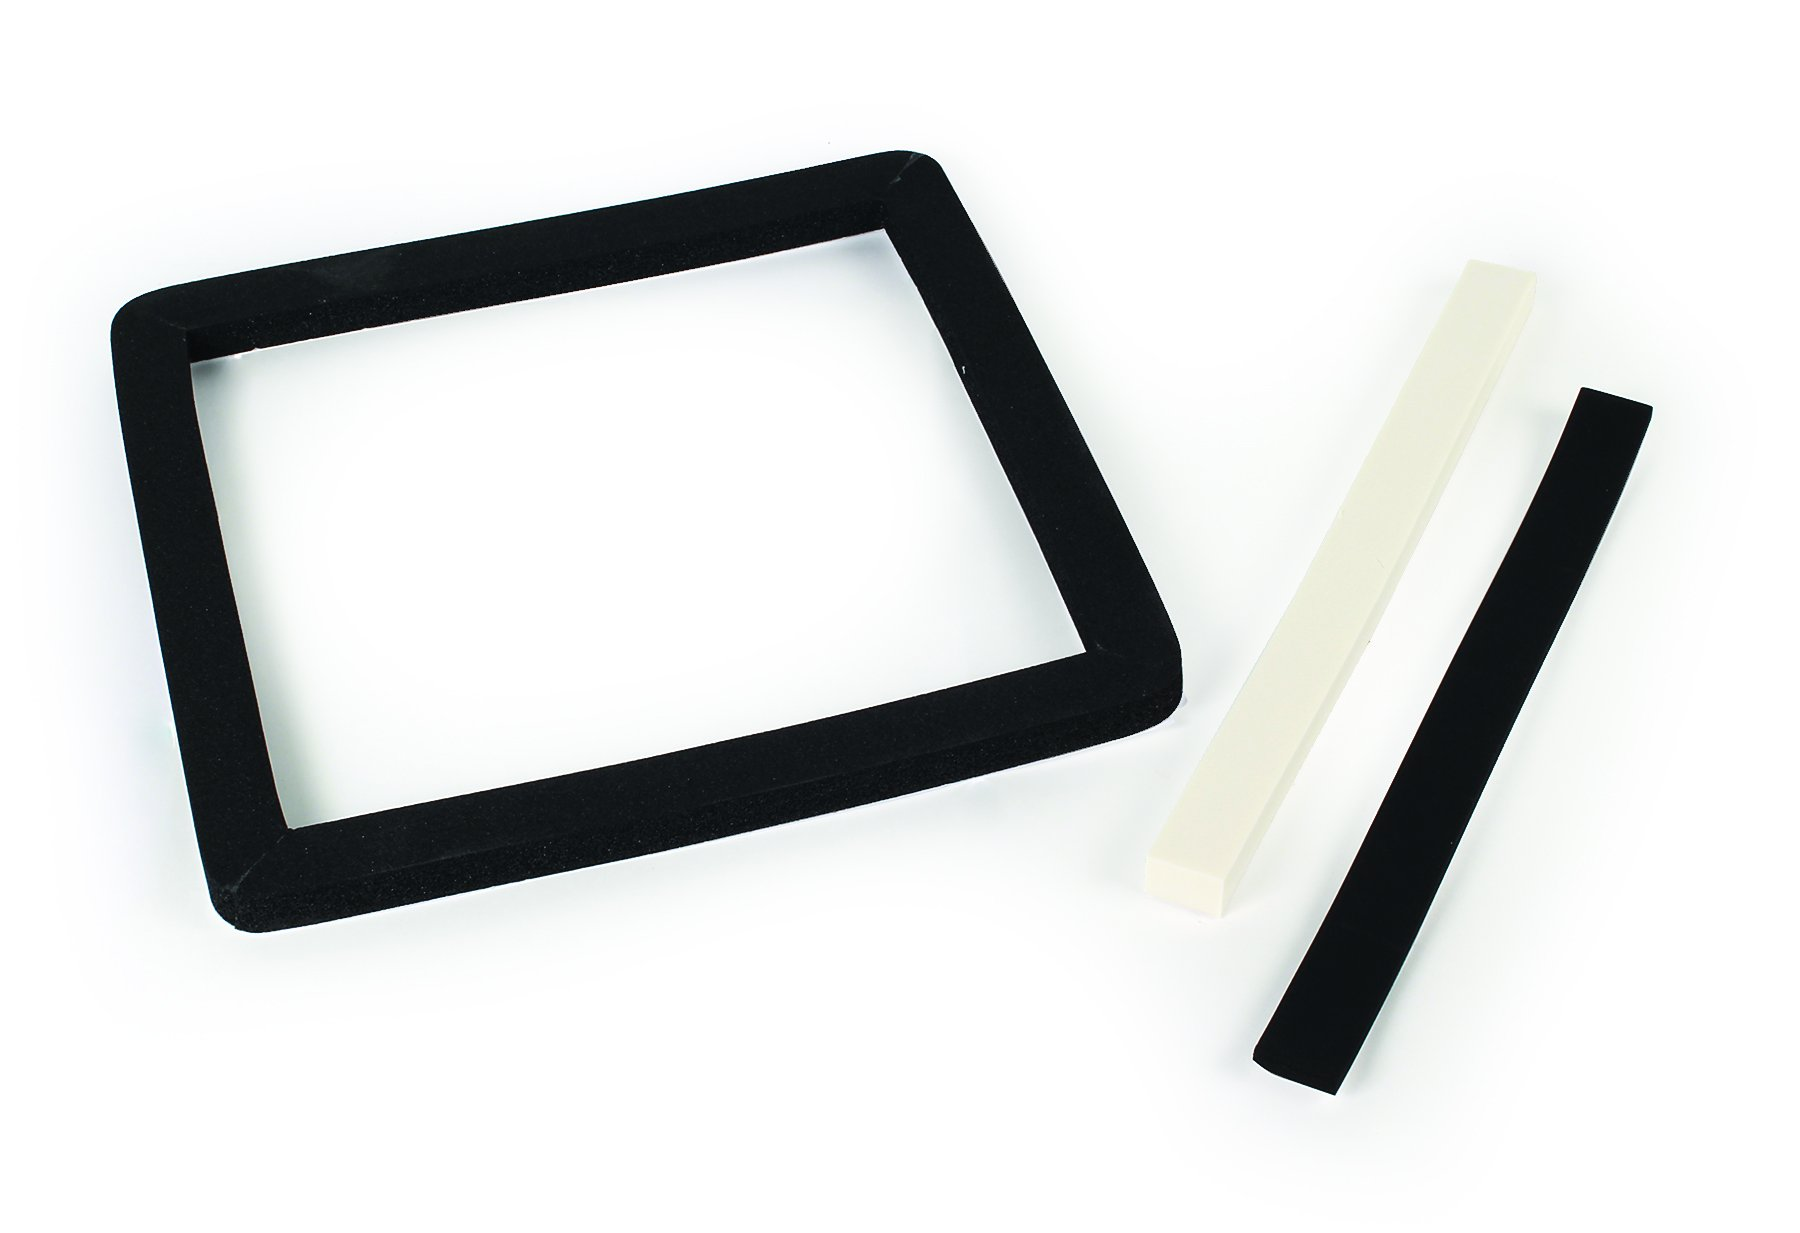 Camco 25071 14'' x 14'' Universal Roof Air Conditioner Gasket Kit